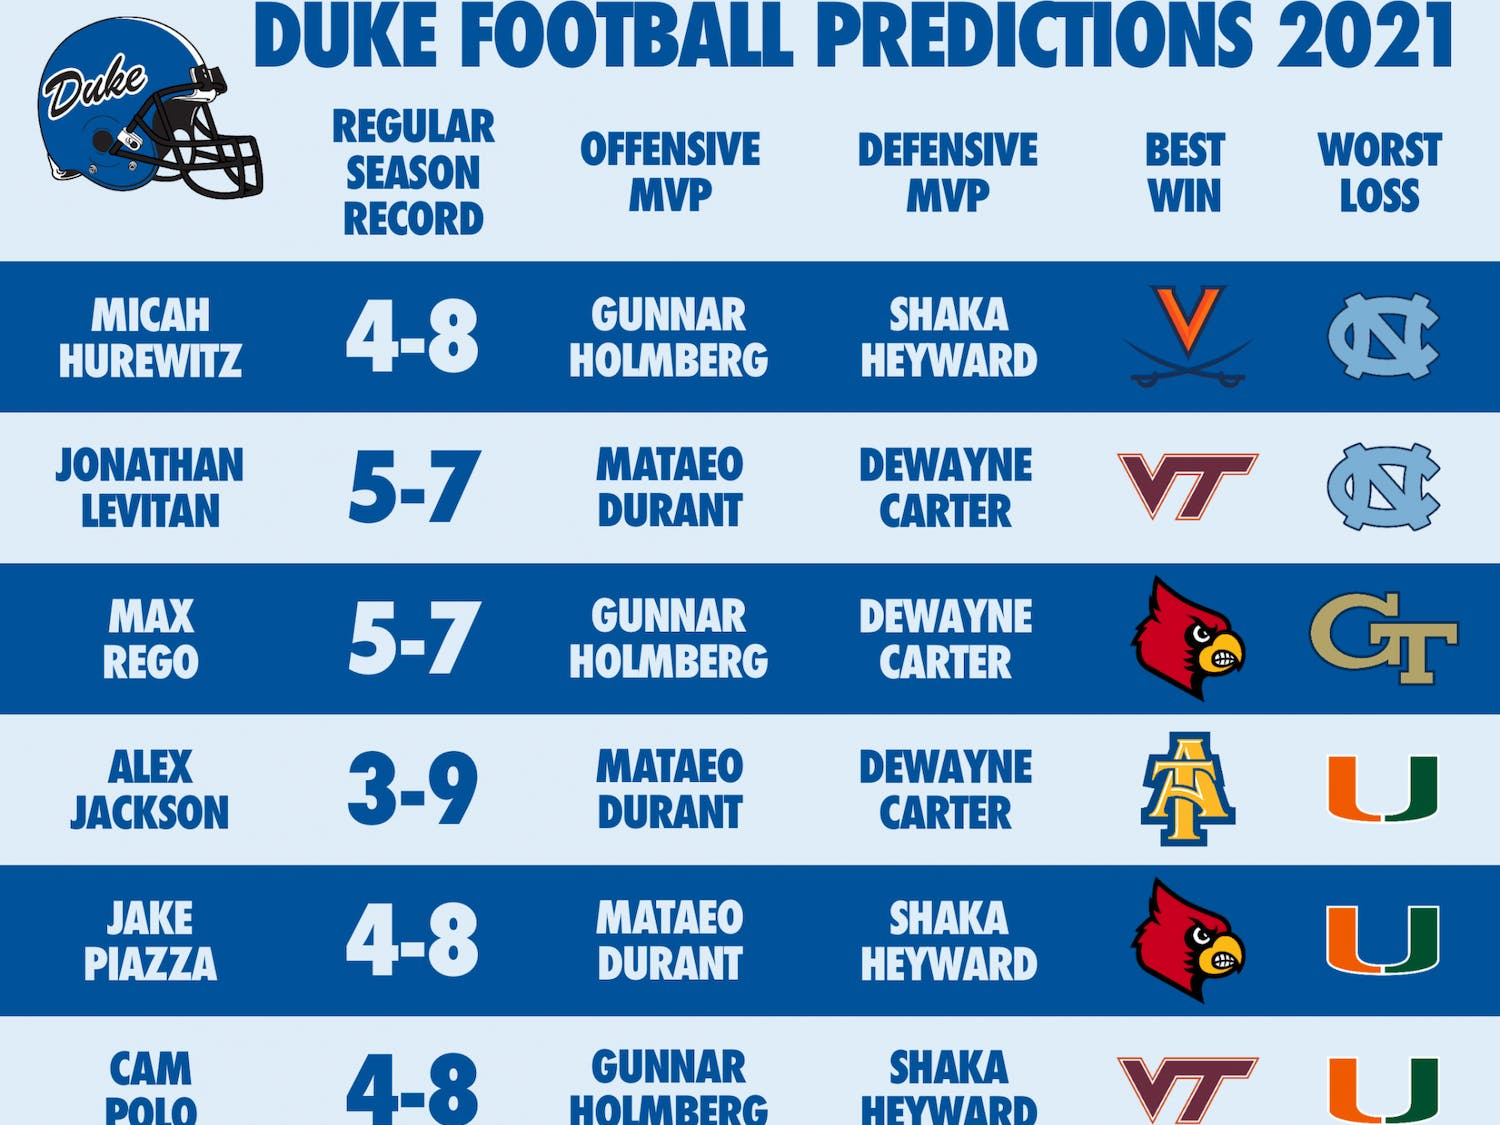 Here's our beats' predictions for this year's football season.